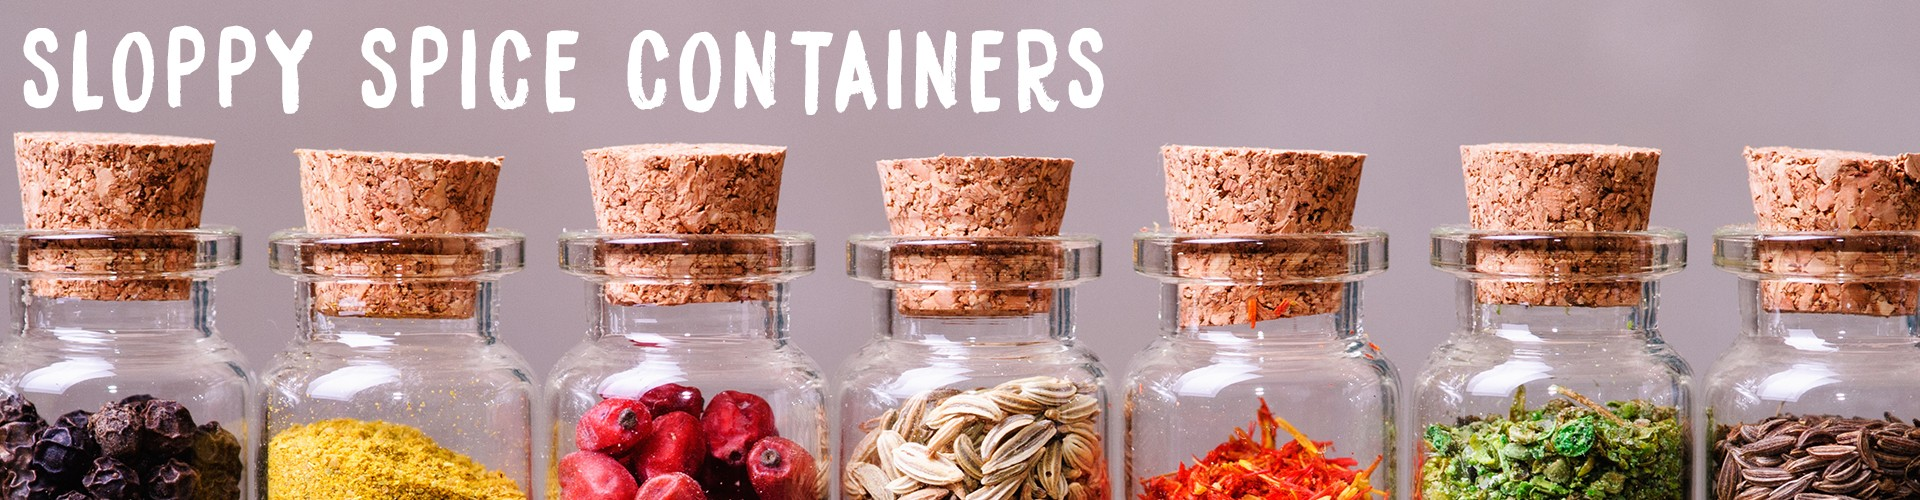 sloppy-spice-containers